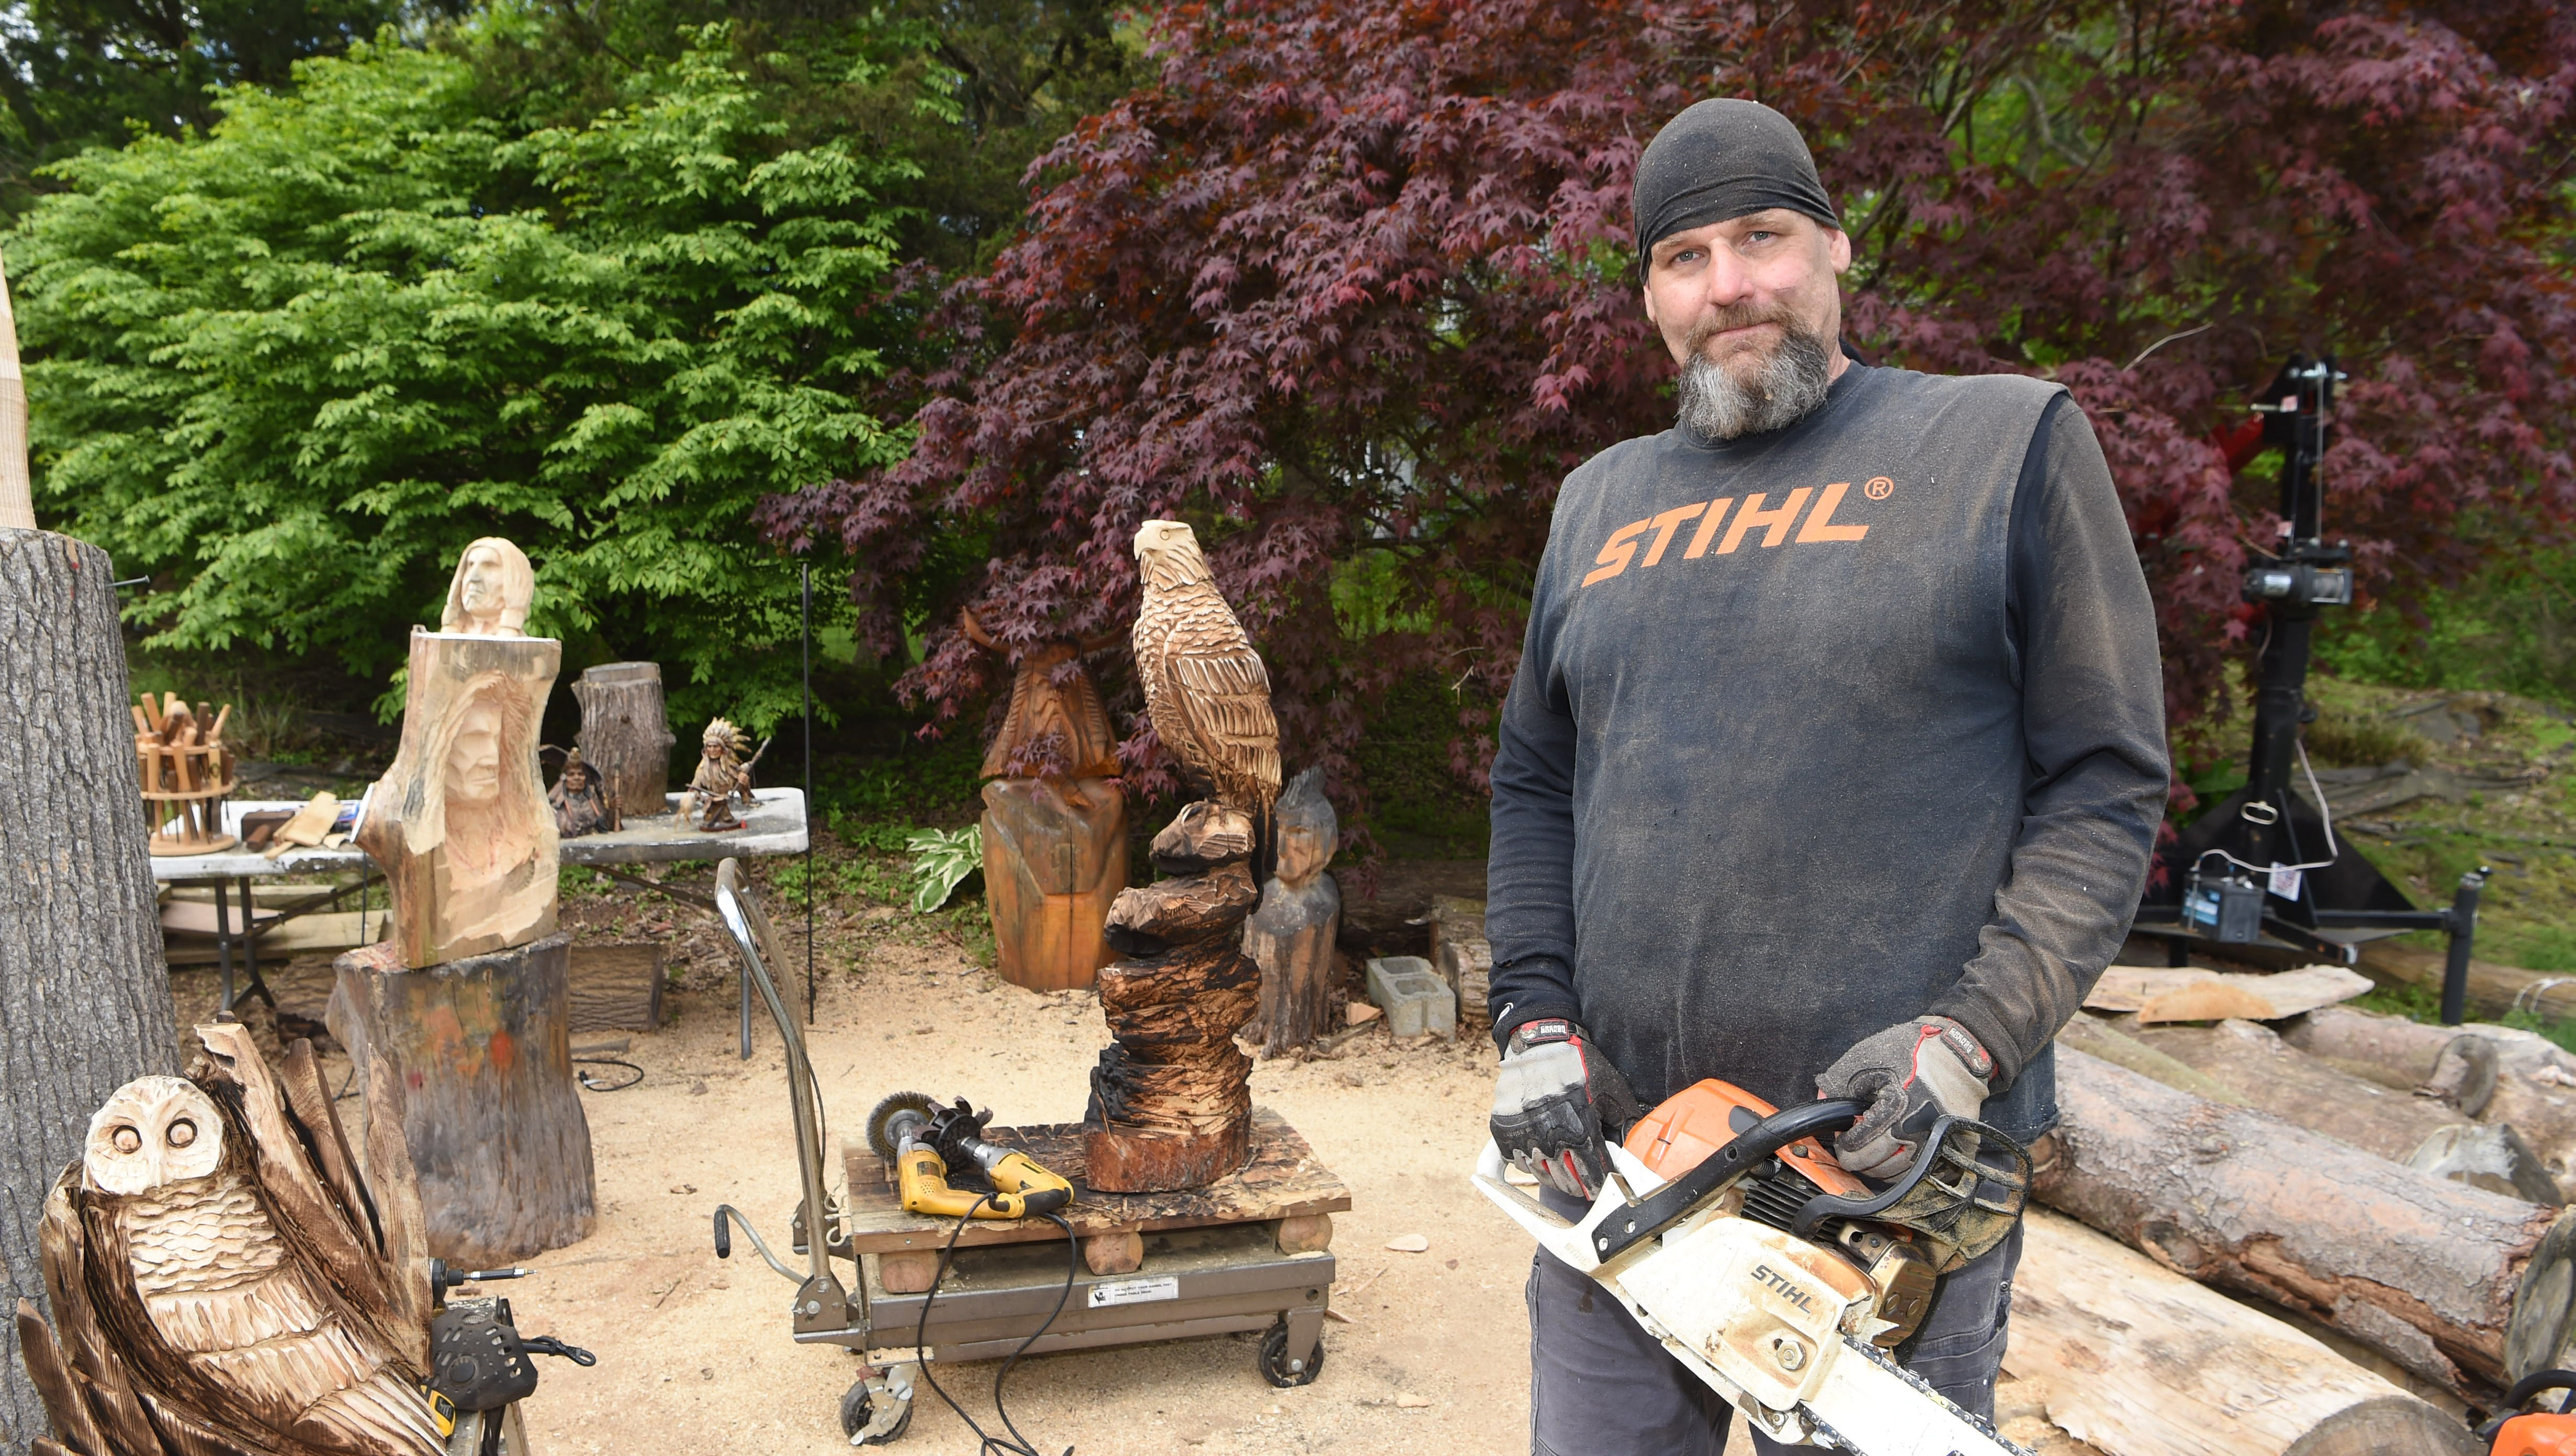 Empty nester fills gap in life with chainsaw art